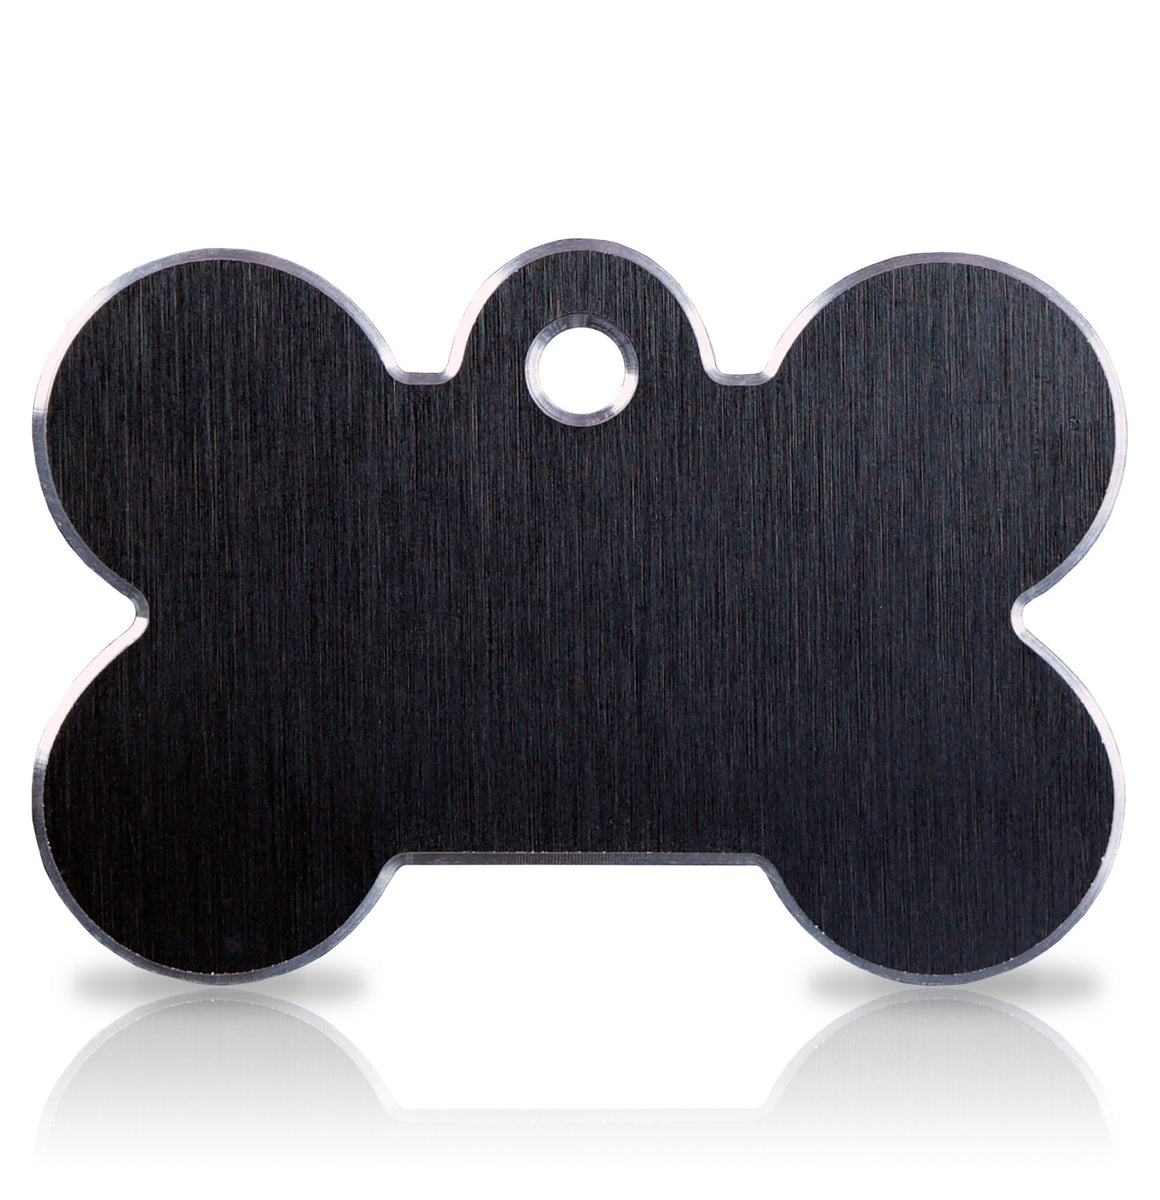 TaggIT Hi-Line Aluminium Large Bone Black iMarc Dog Tag